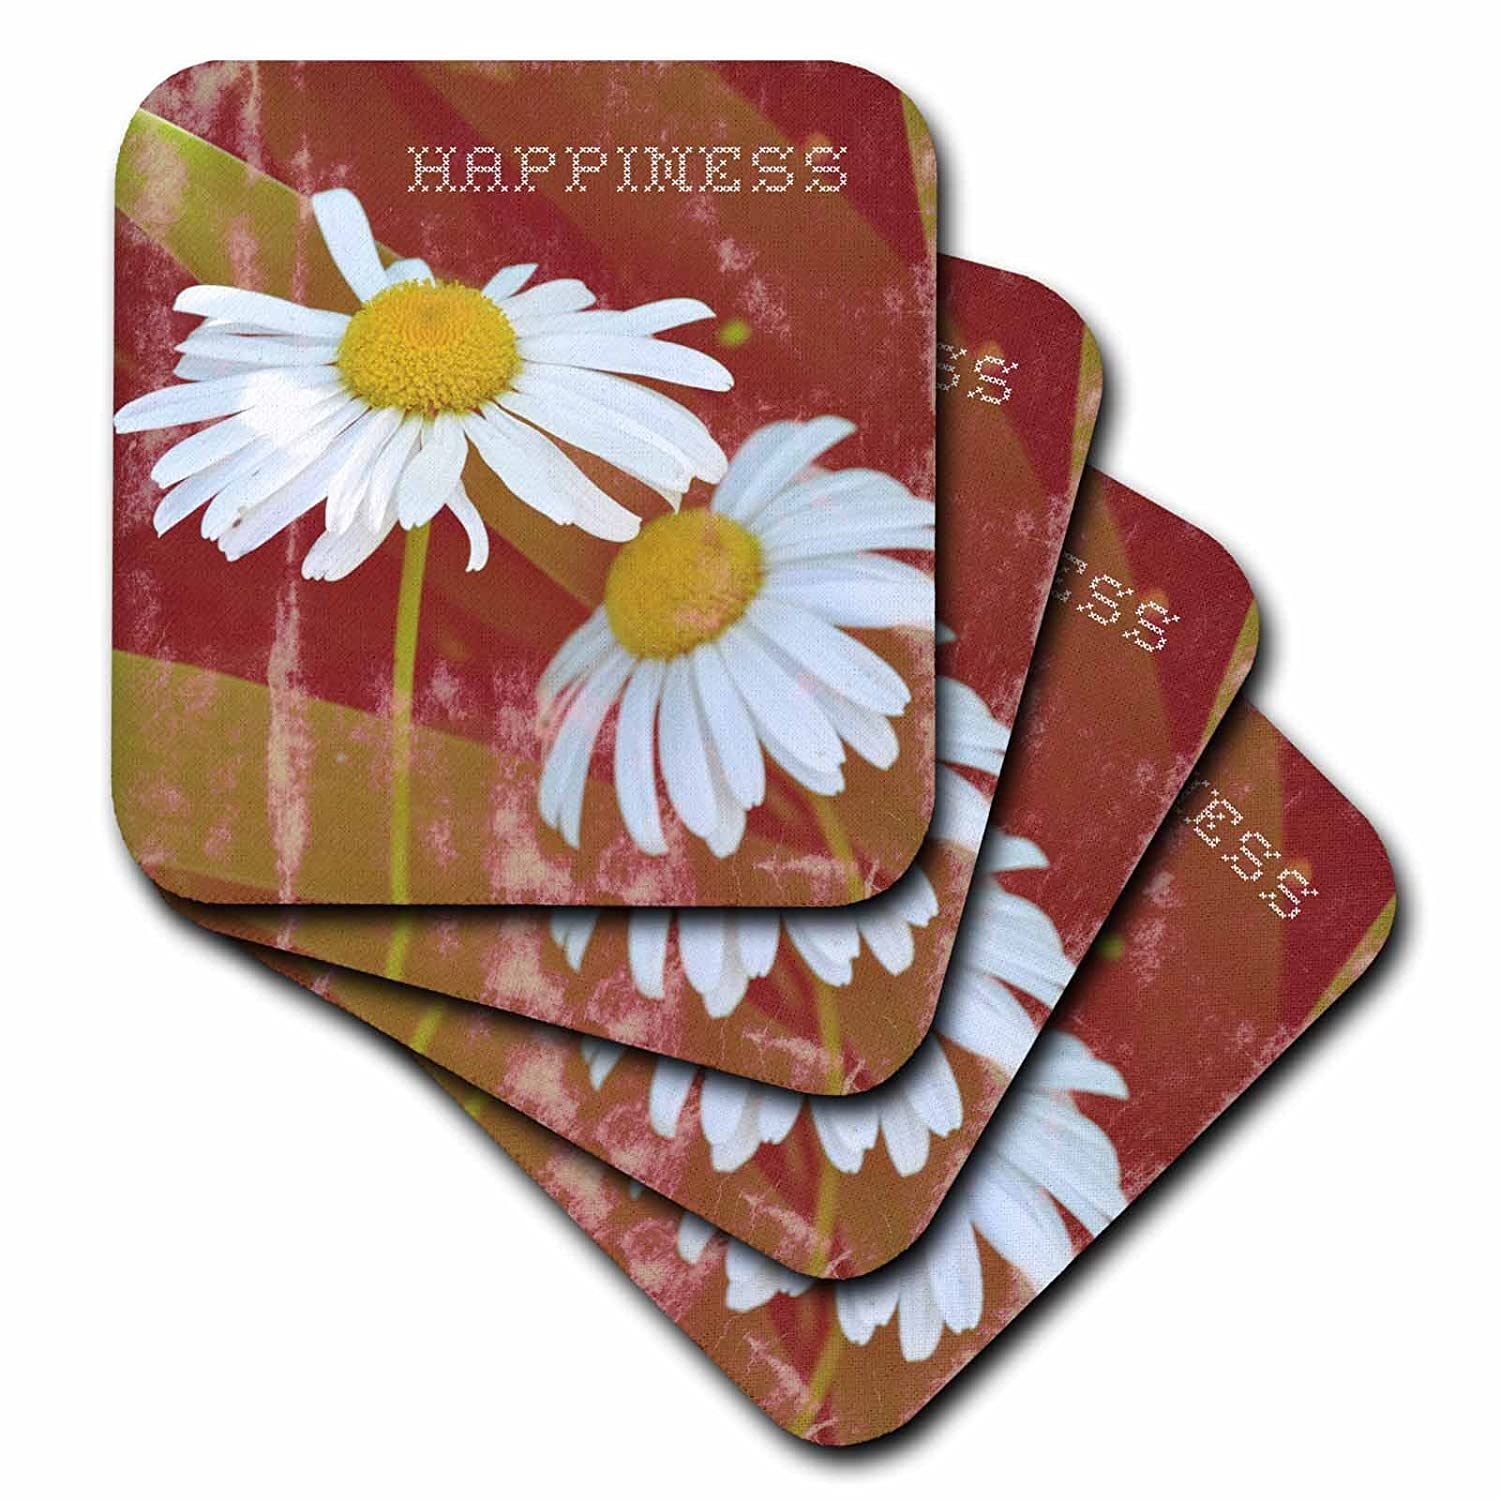 3dRose cst/_29399/_1 Vintage Happiness Daisy Flowers Flower Photography-Soft Coasters Set of 4